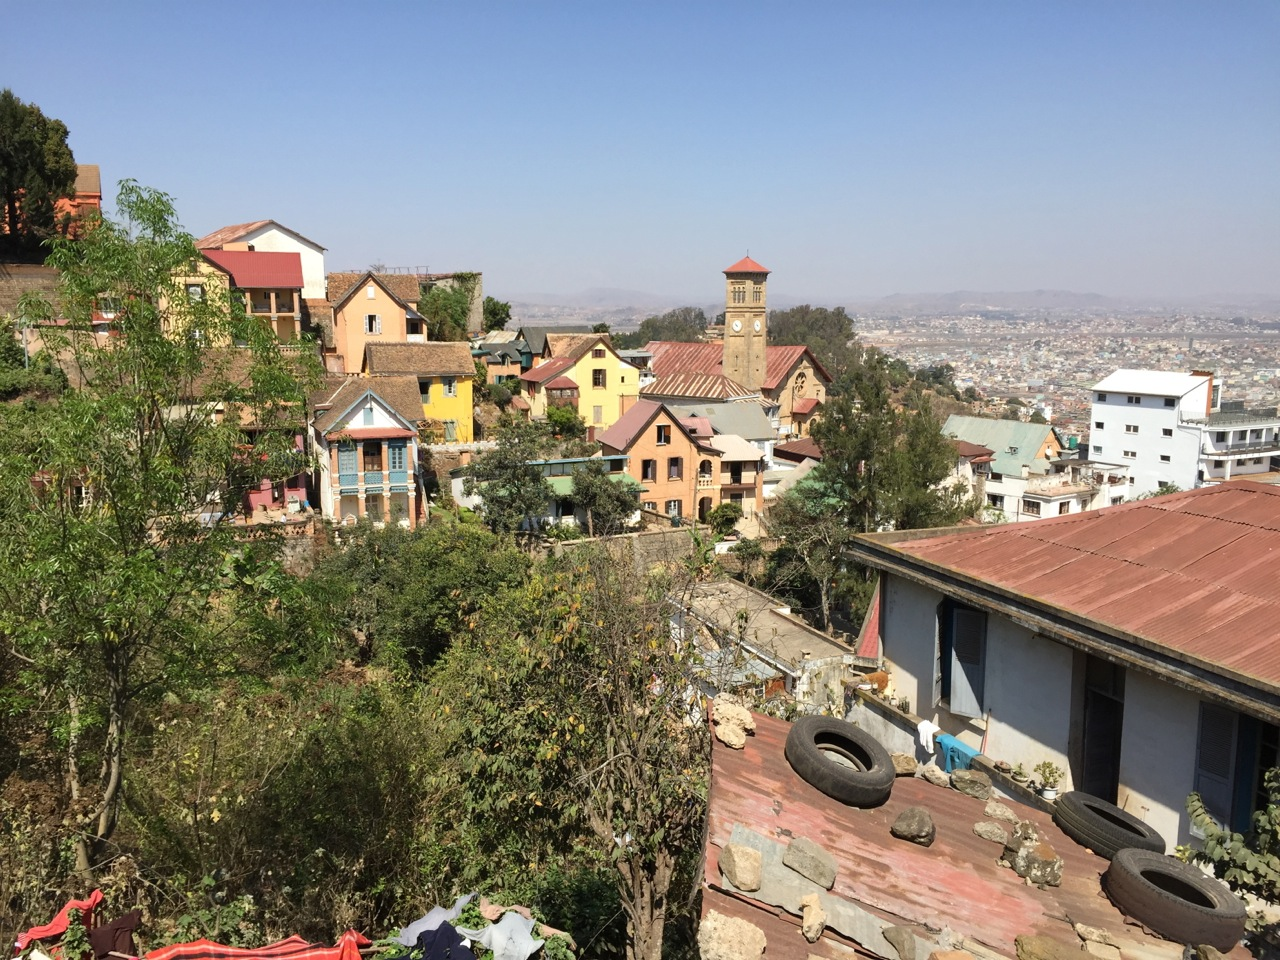 View of Antananarivo from the Queen's Palace.